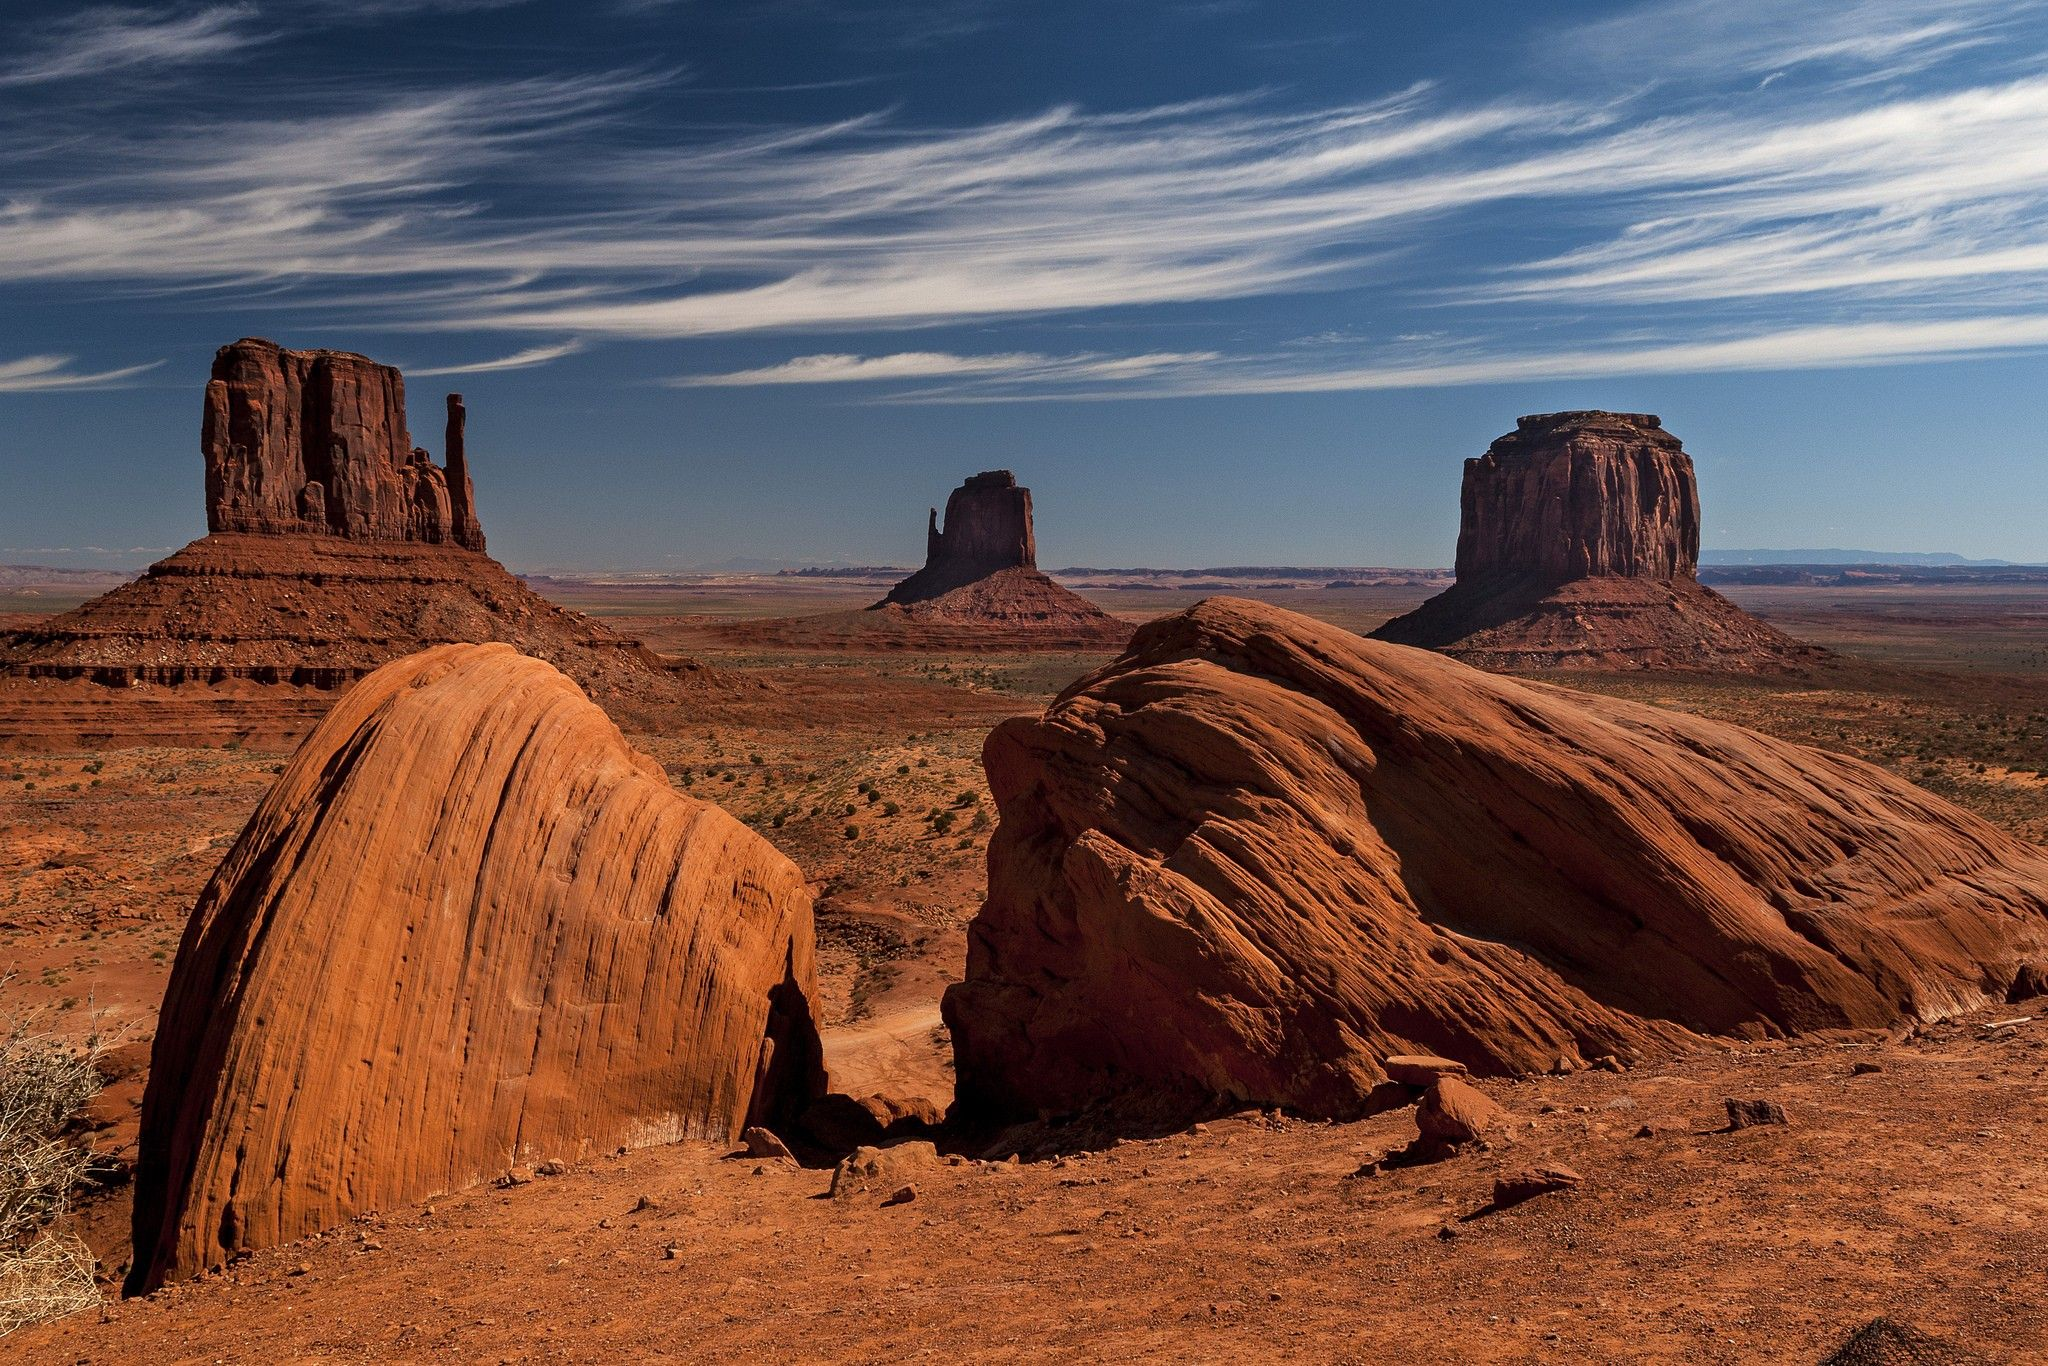 Other Monument Valley Widescreen Rocks Phil Brown Wallpaper